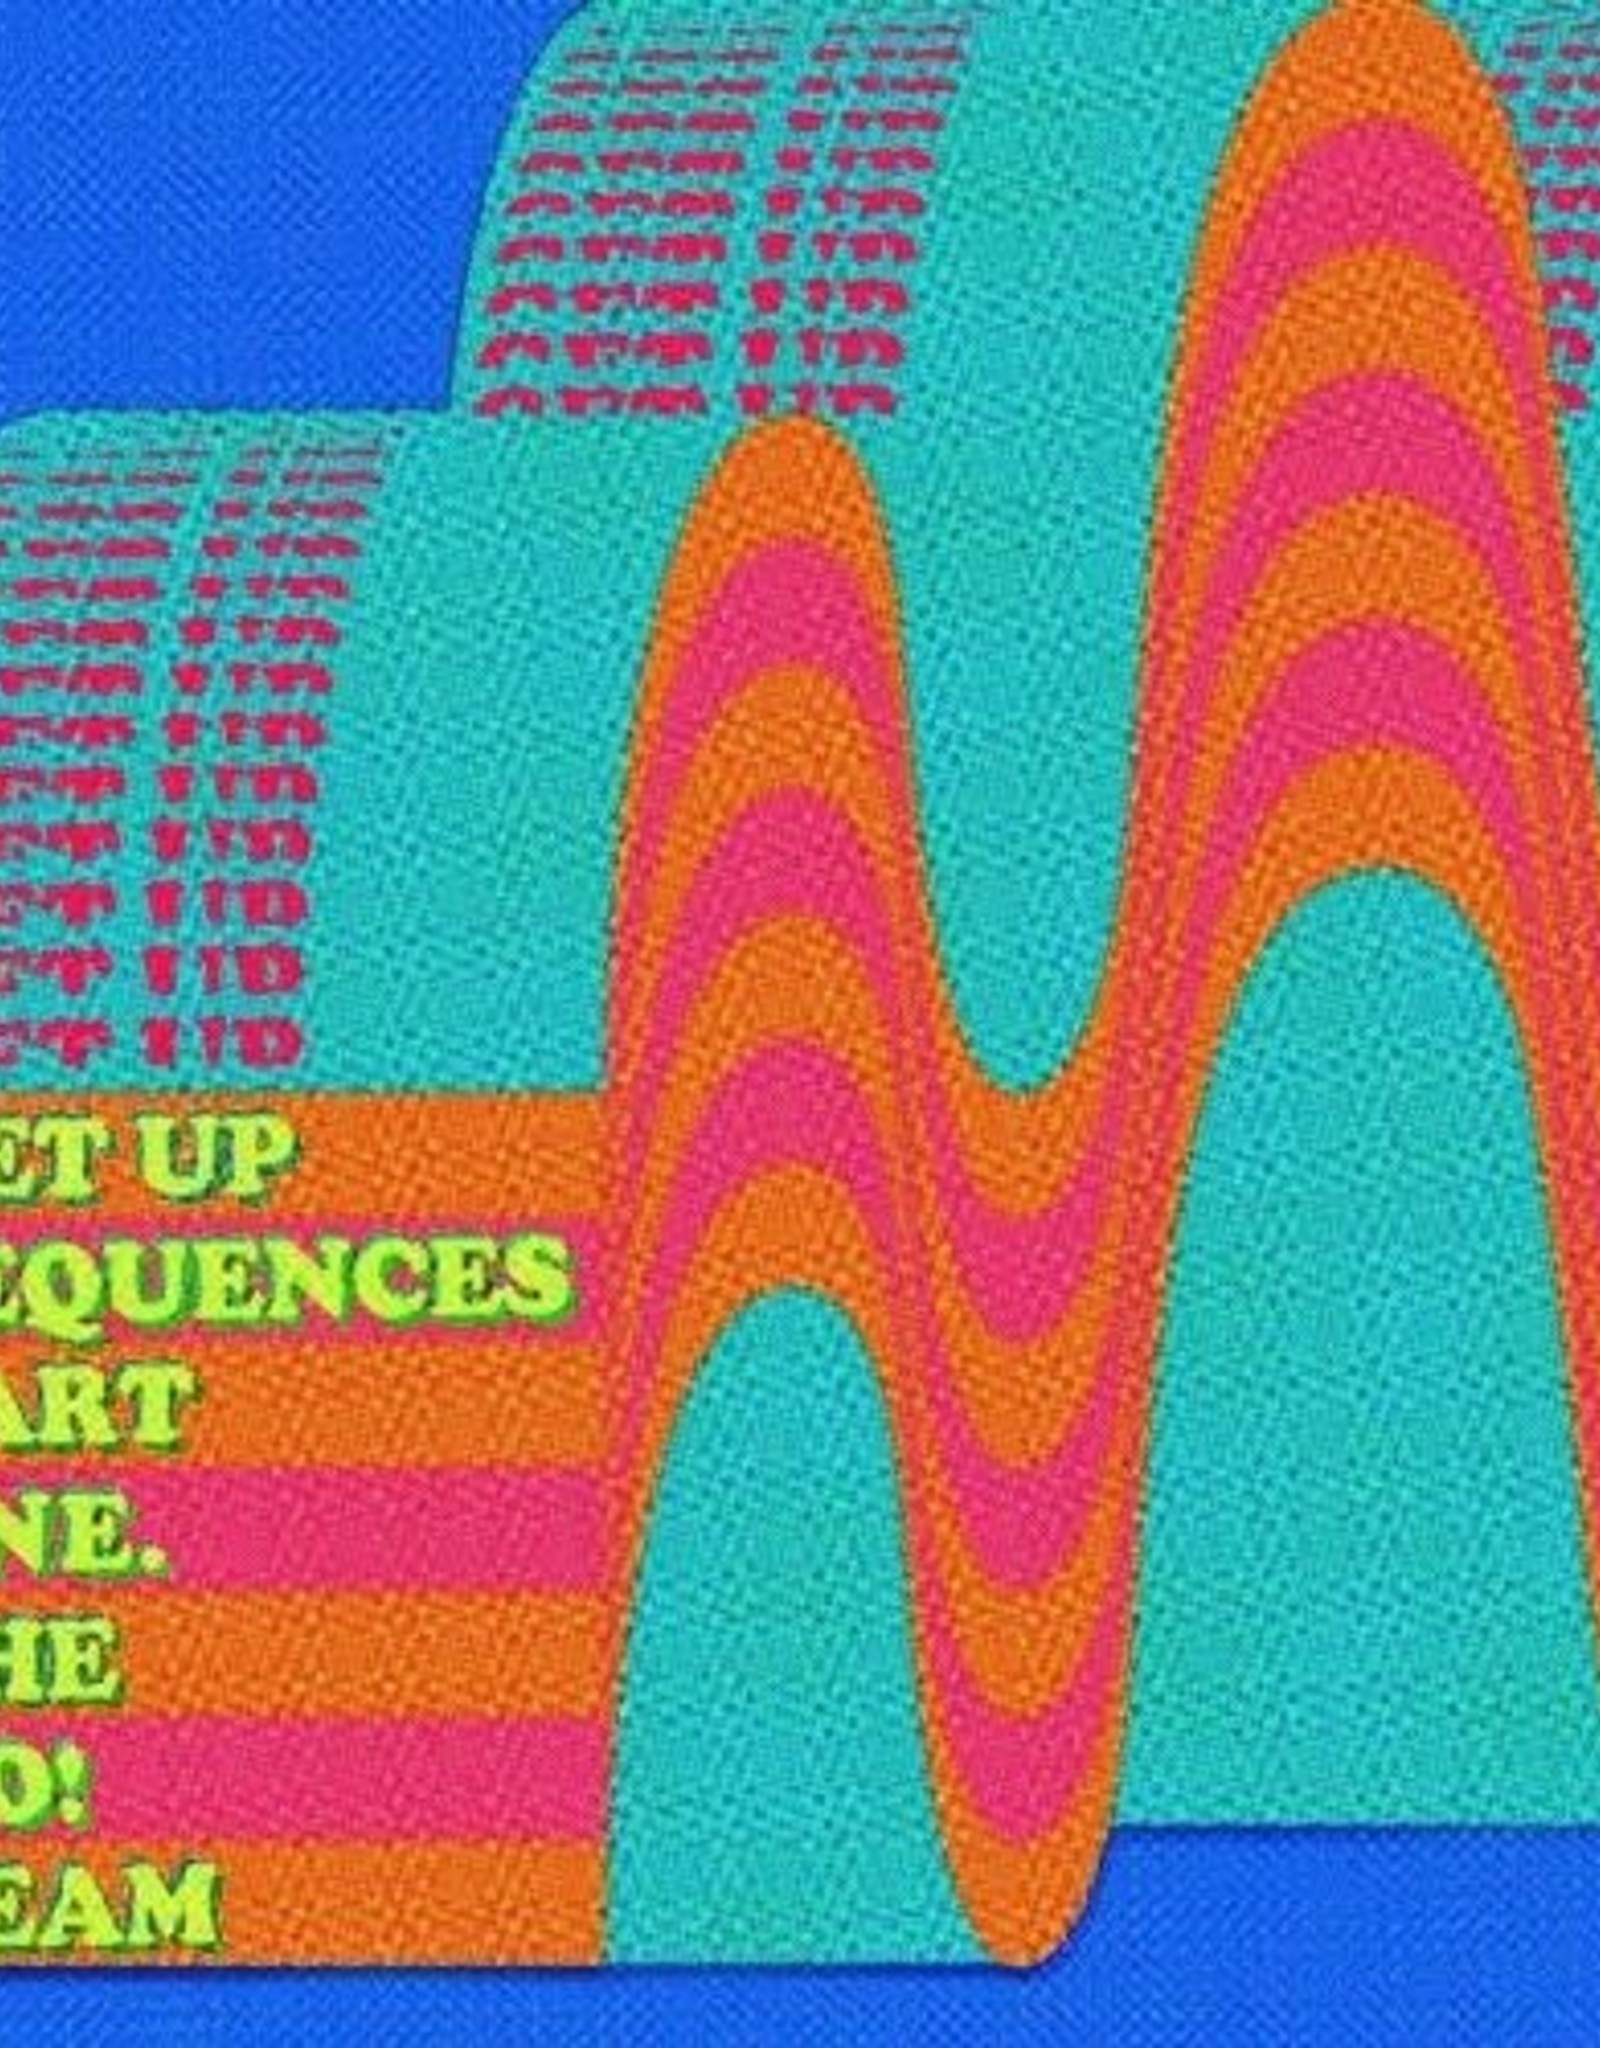 The Go! Team - Get Up Sequences Part One (Limited Edition, Turquoise Vinyl, Indie Exclusive, Digital Download Card)